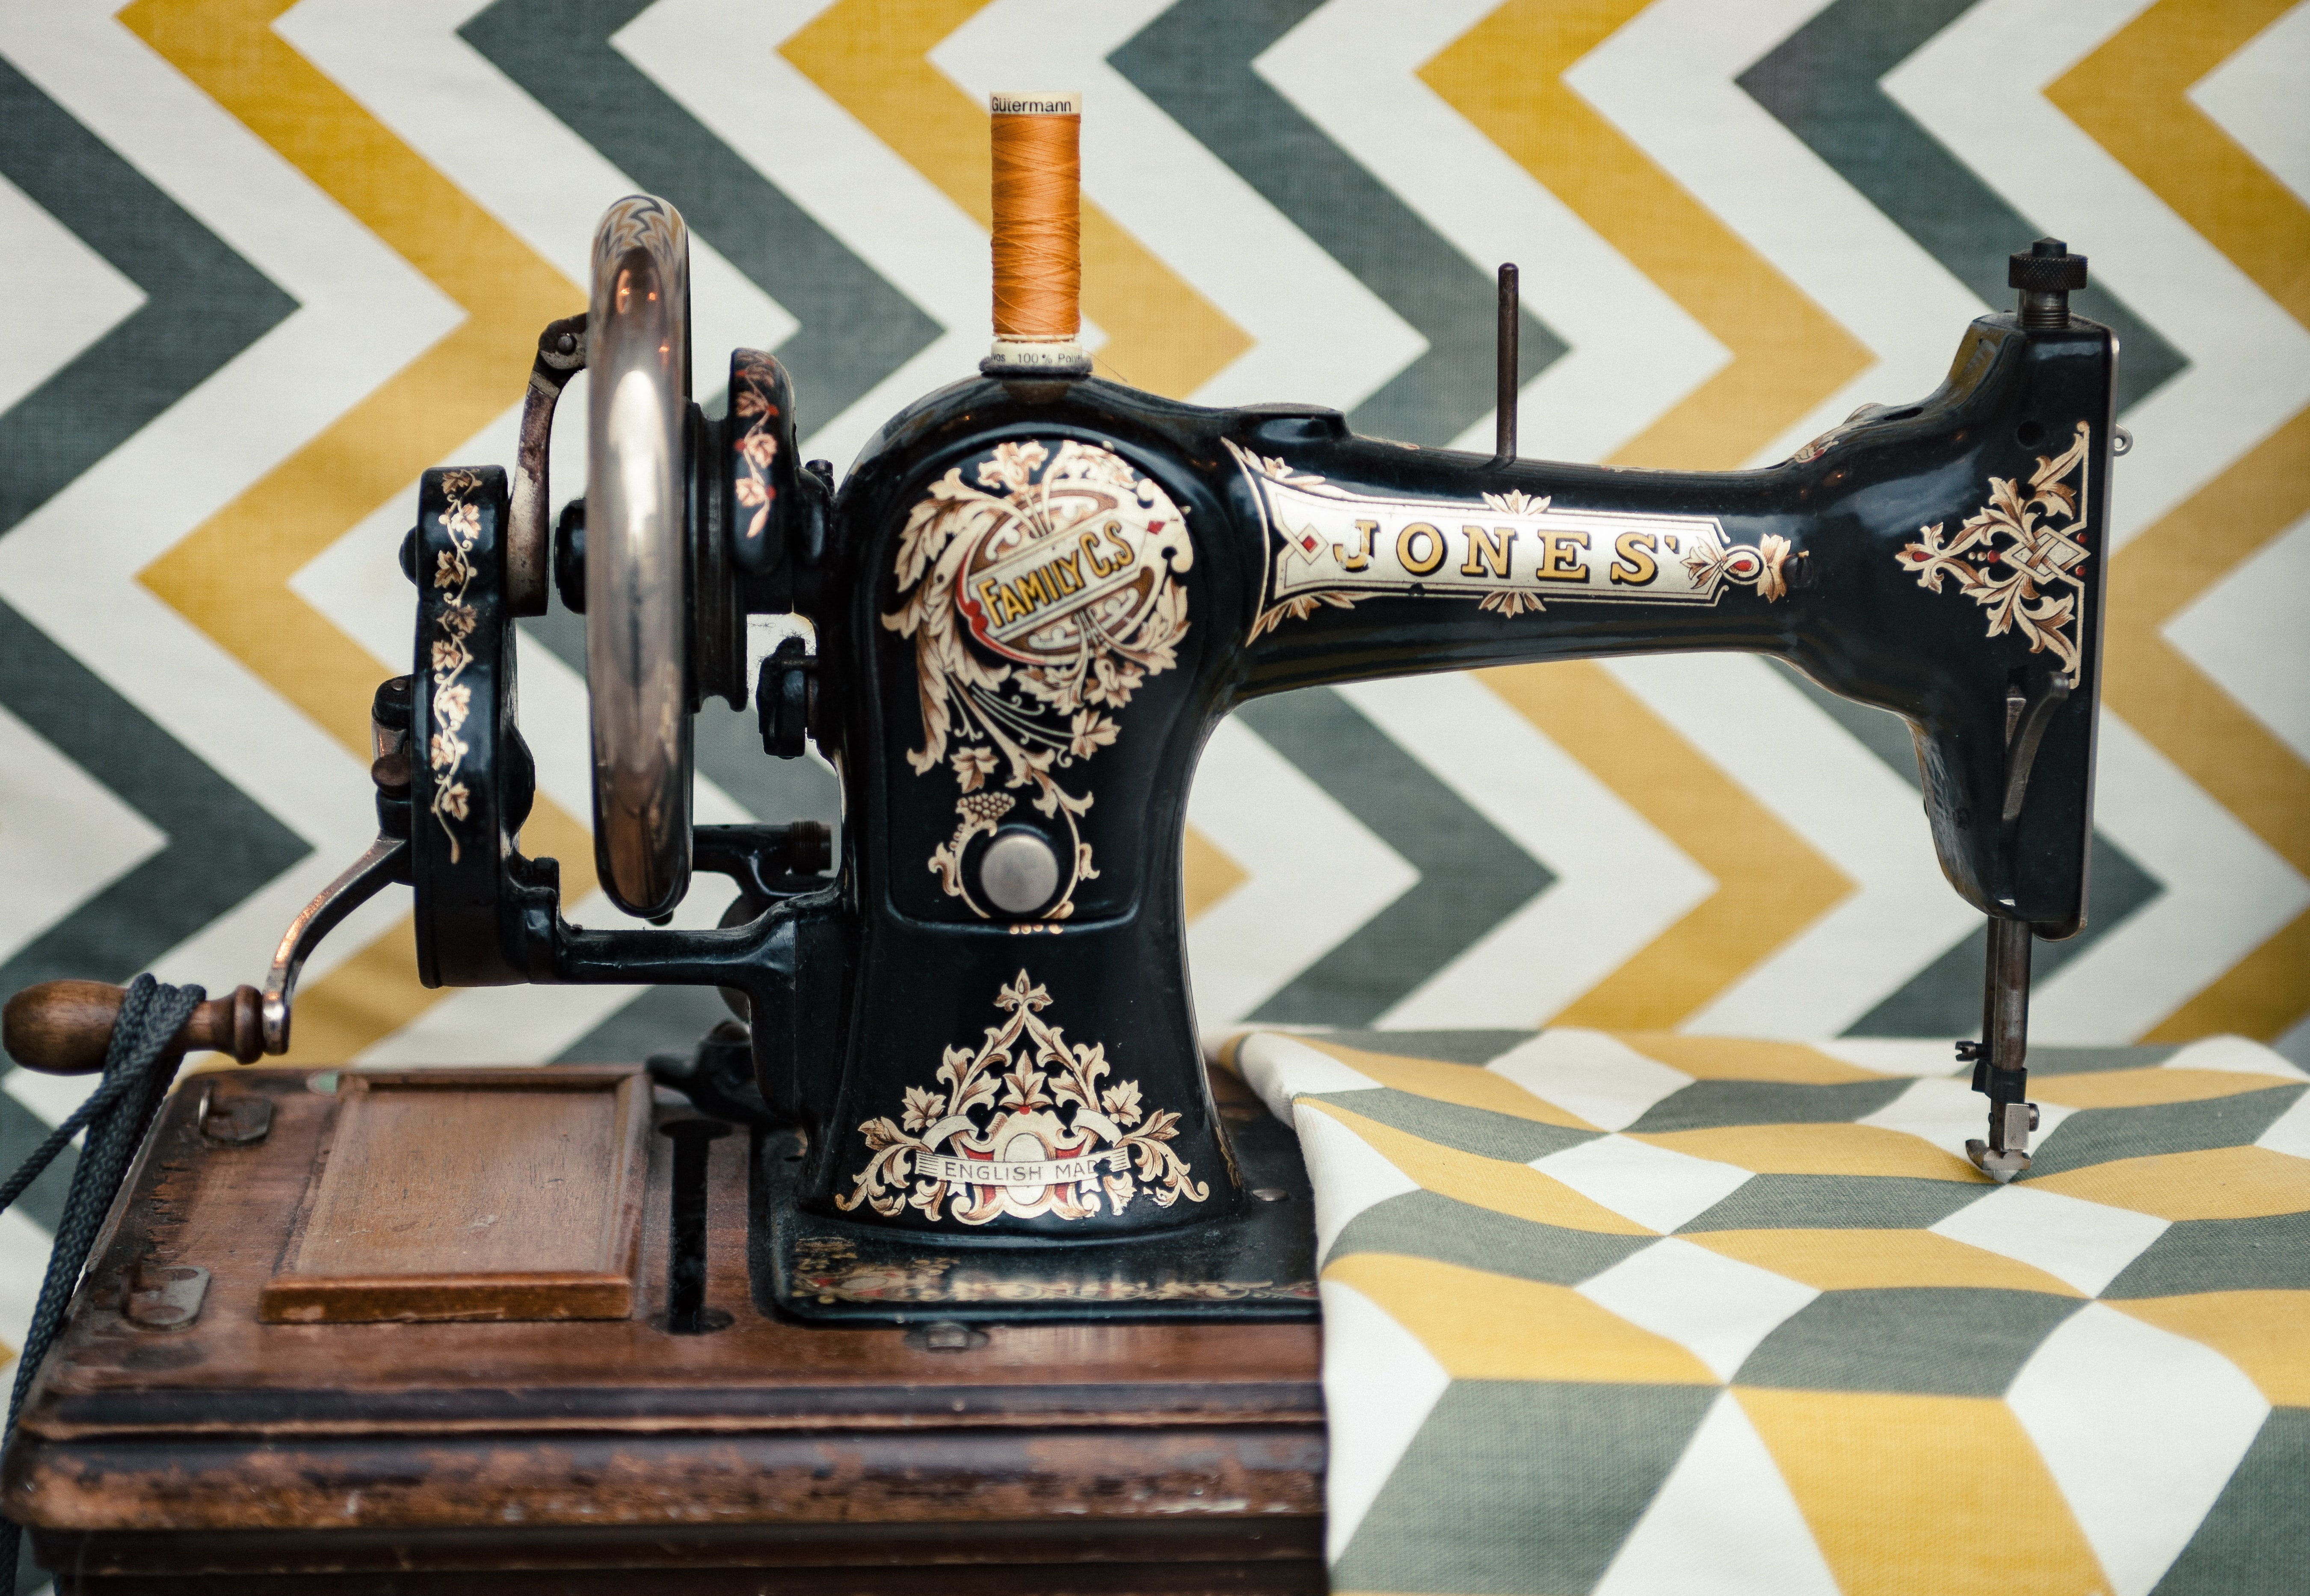 The side view of an old vintage sewing machine sewing on a patterned fabric in cambridge.